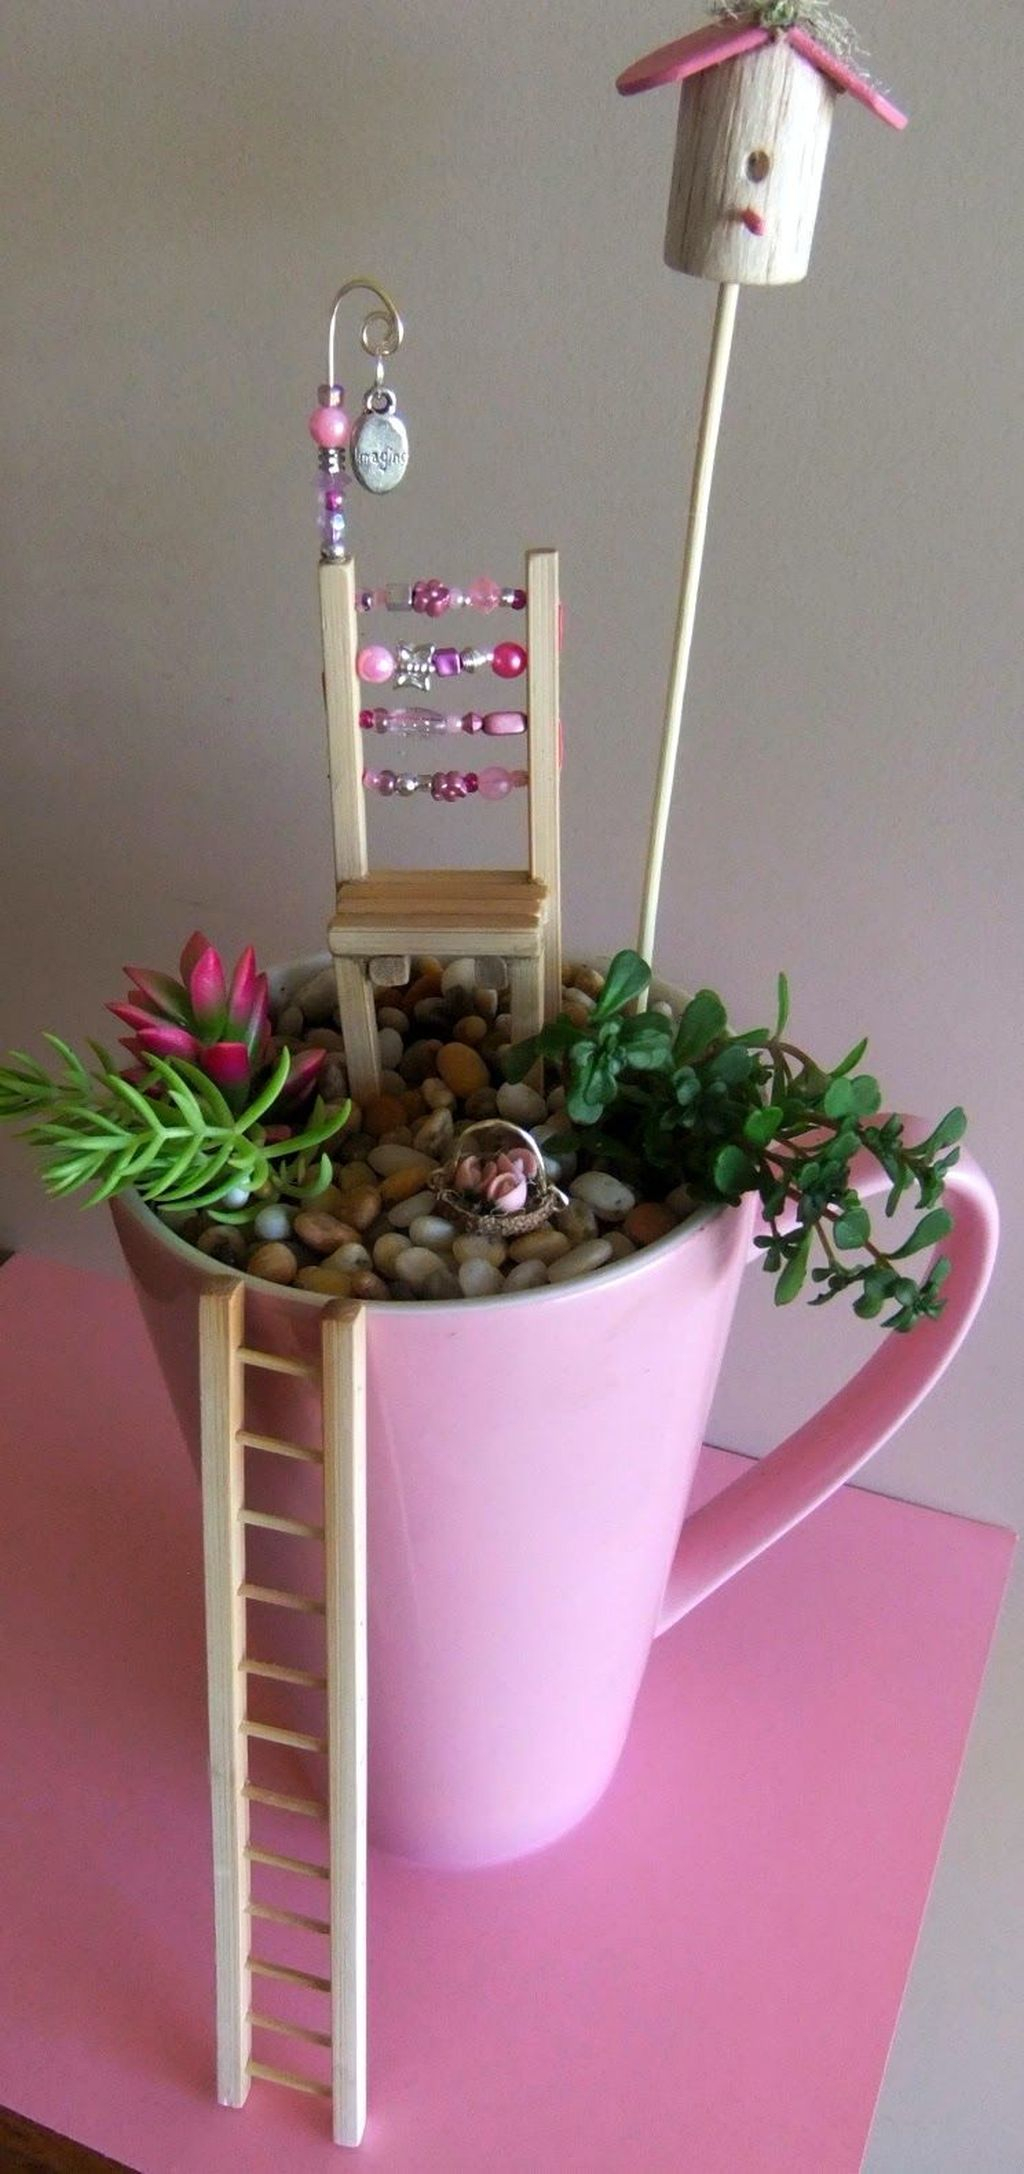 Inspiring Diy Teacup Mini Garden Ideas To Add Bliss To Your Home 21